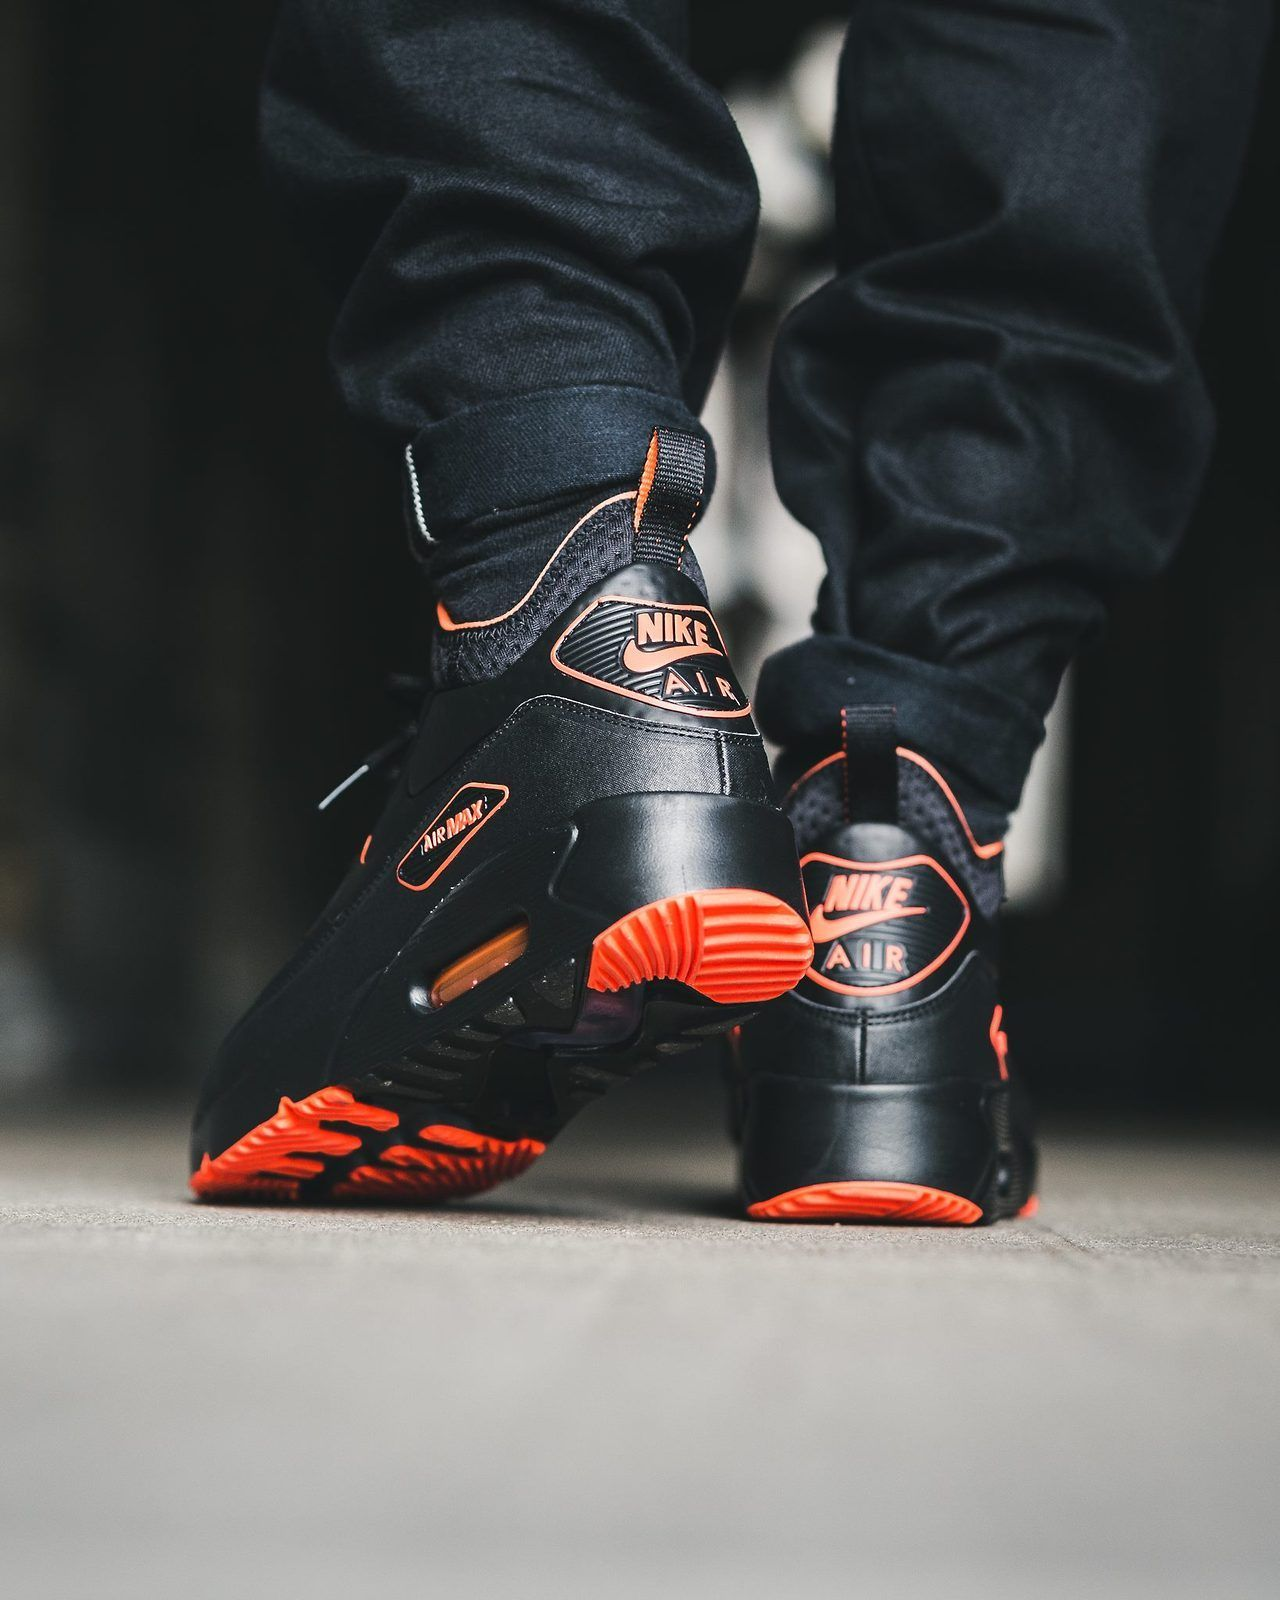 05d995fabbf2 NIKE Air Max 90 Ultra Mid Winter SE  Halloween  (via Titolo)   Titolo